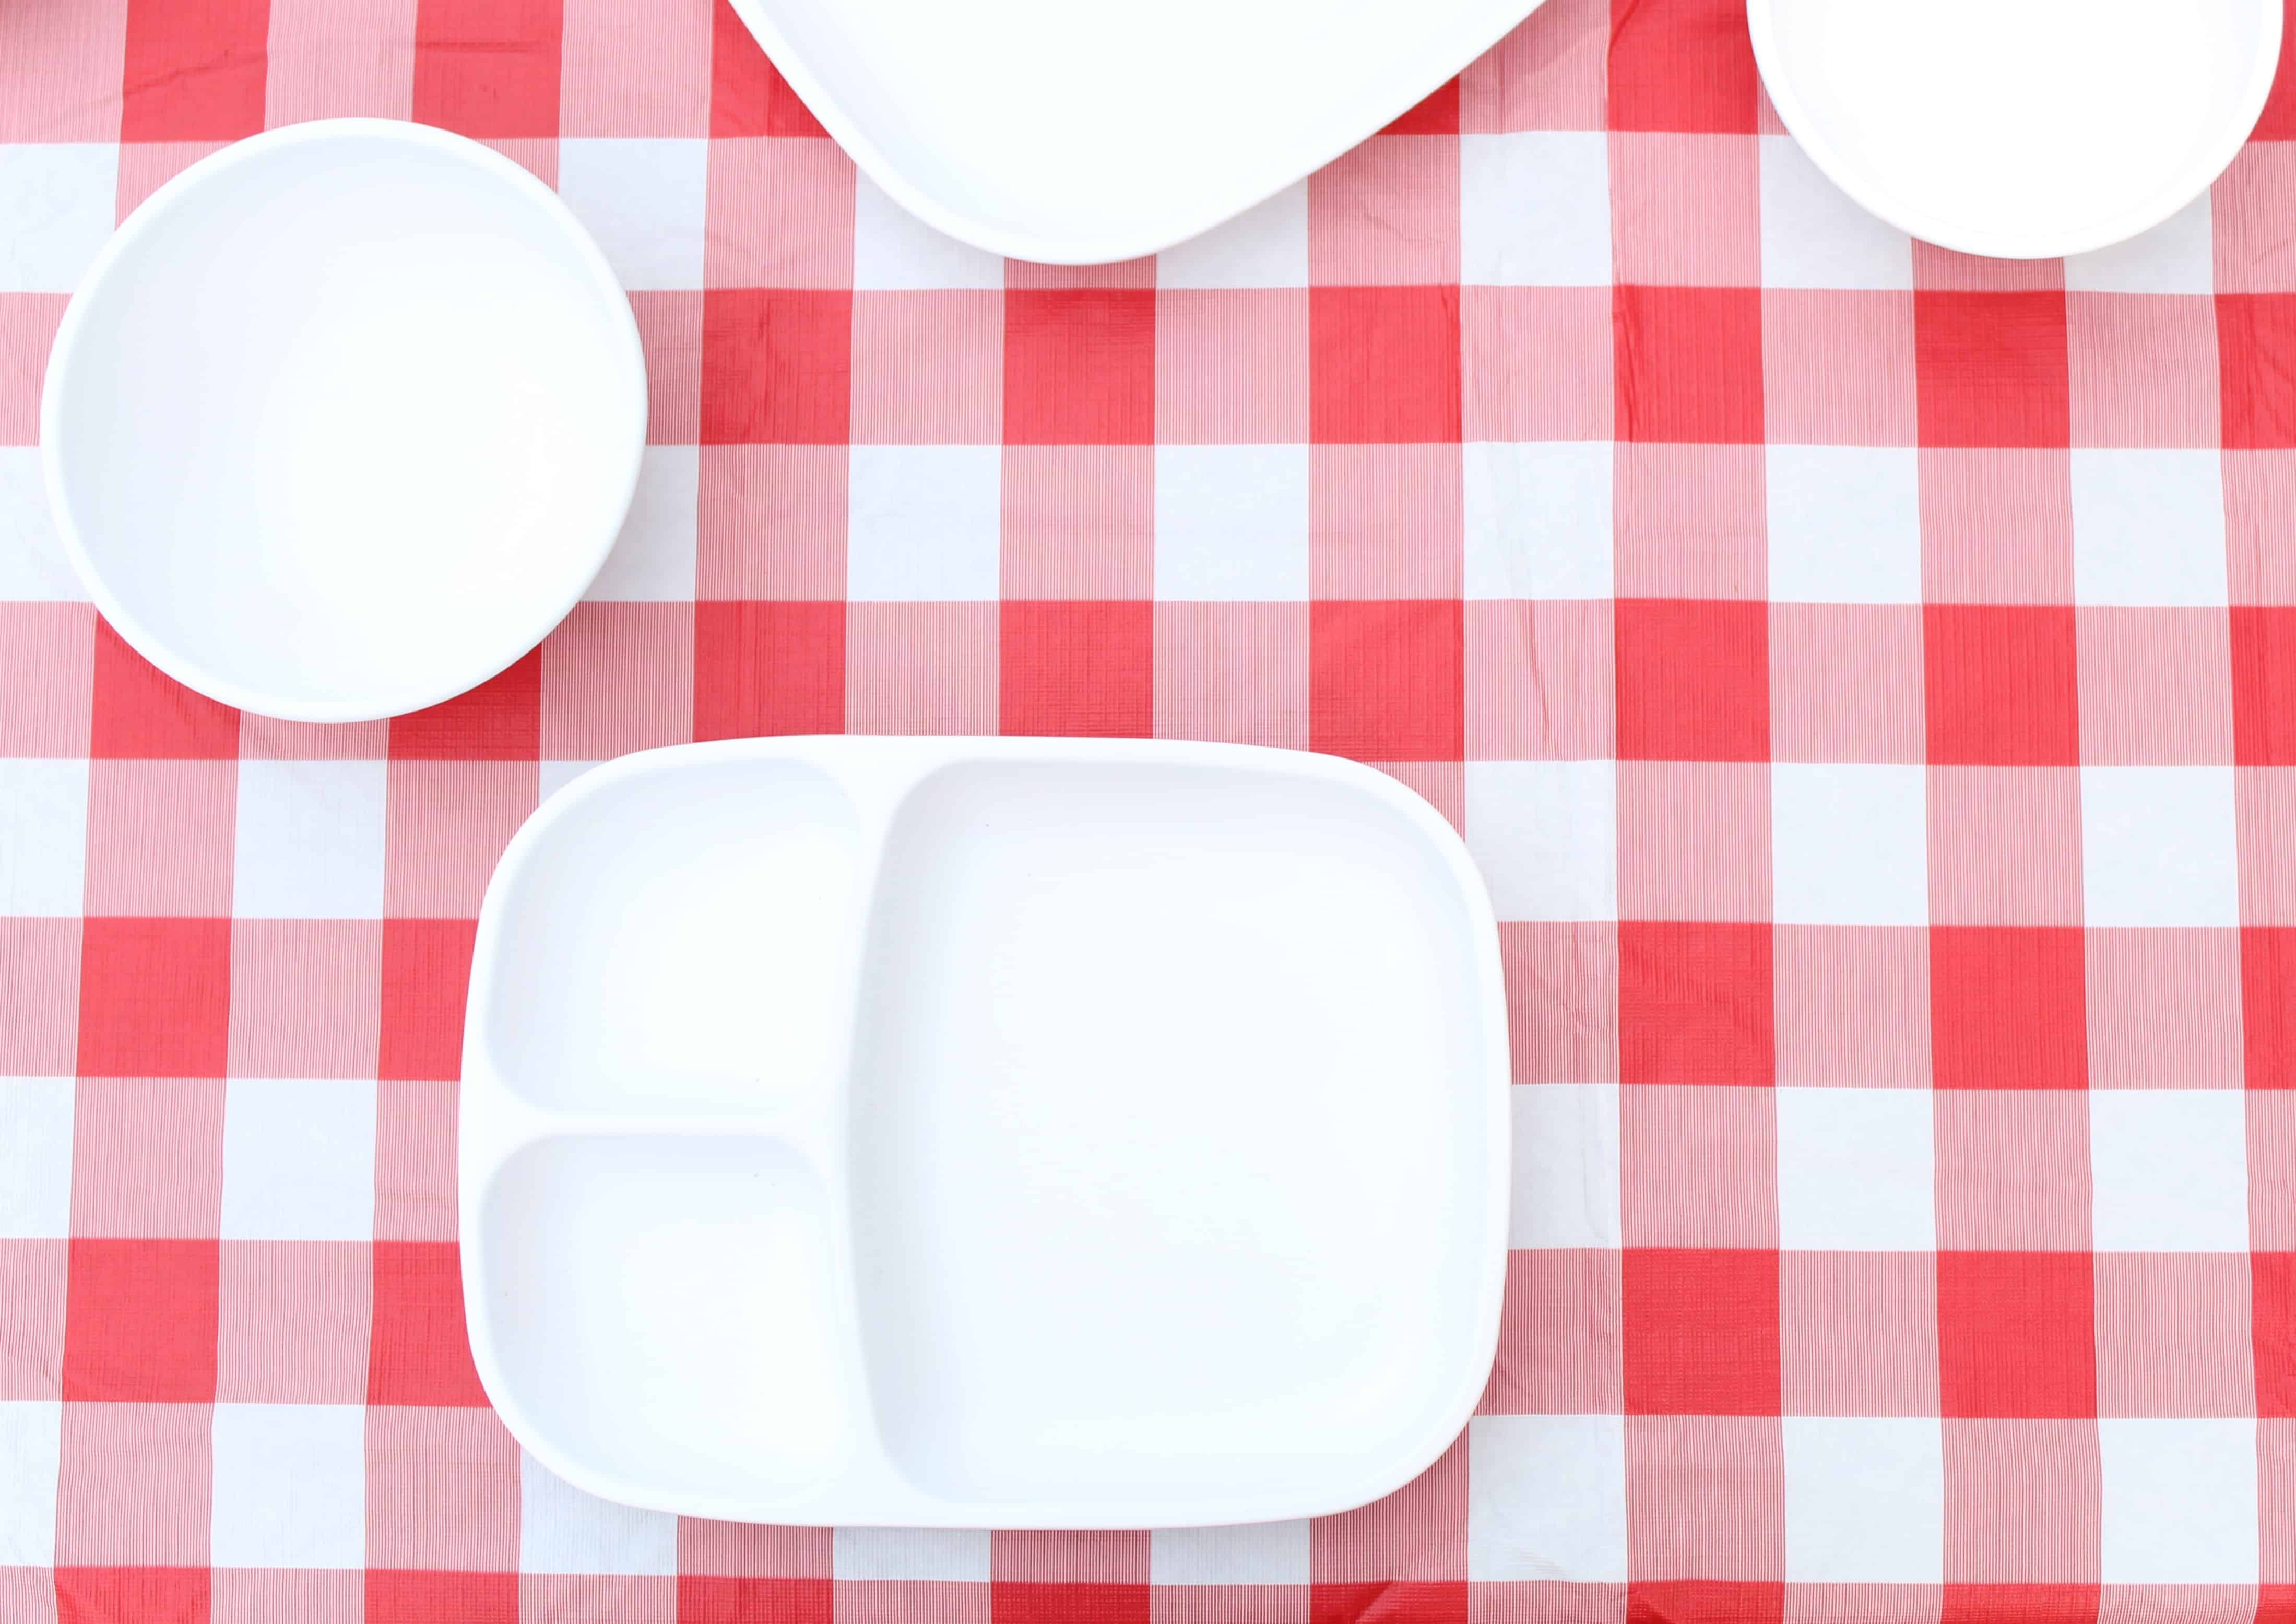 white divided replay recycled plates on red and white table cloth